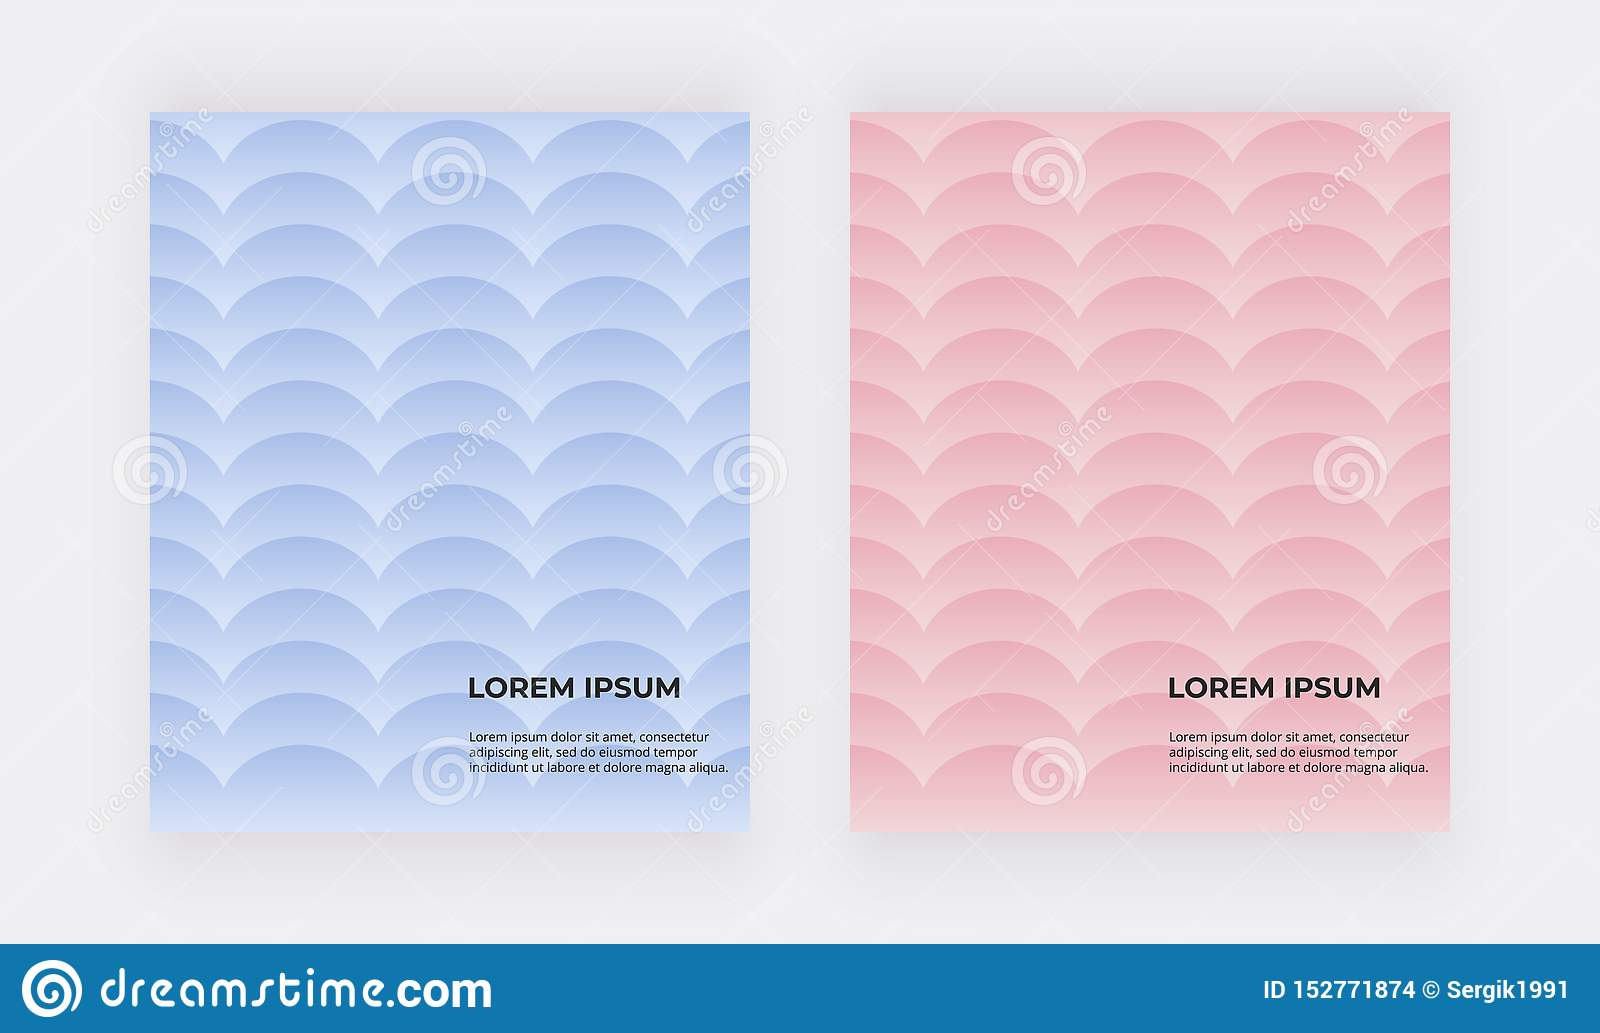 Blue and pink geometric backgrounds. Covers with mermaid scales.